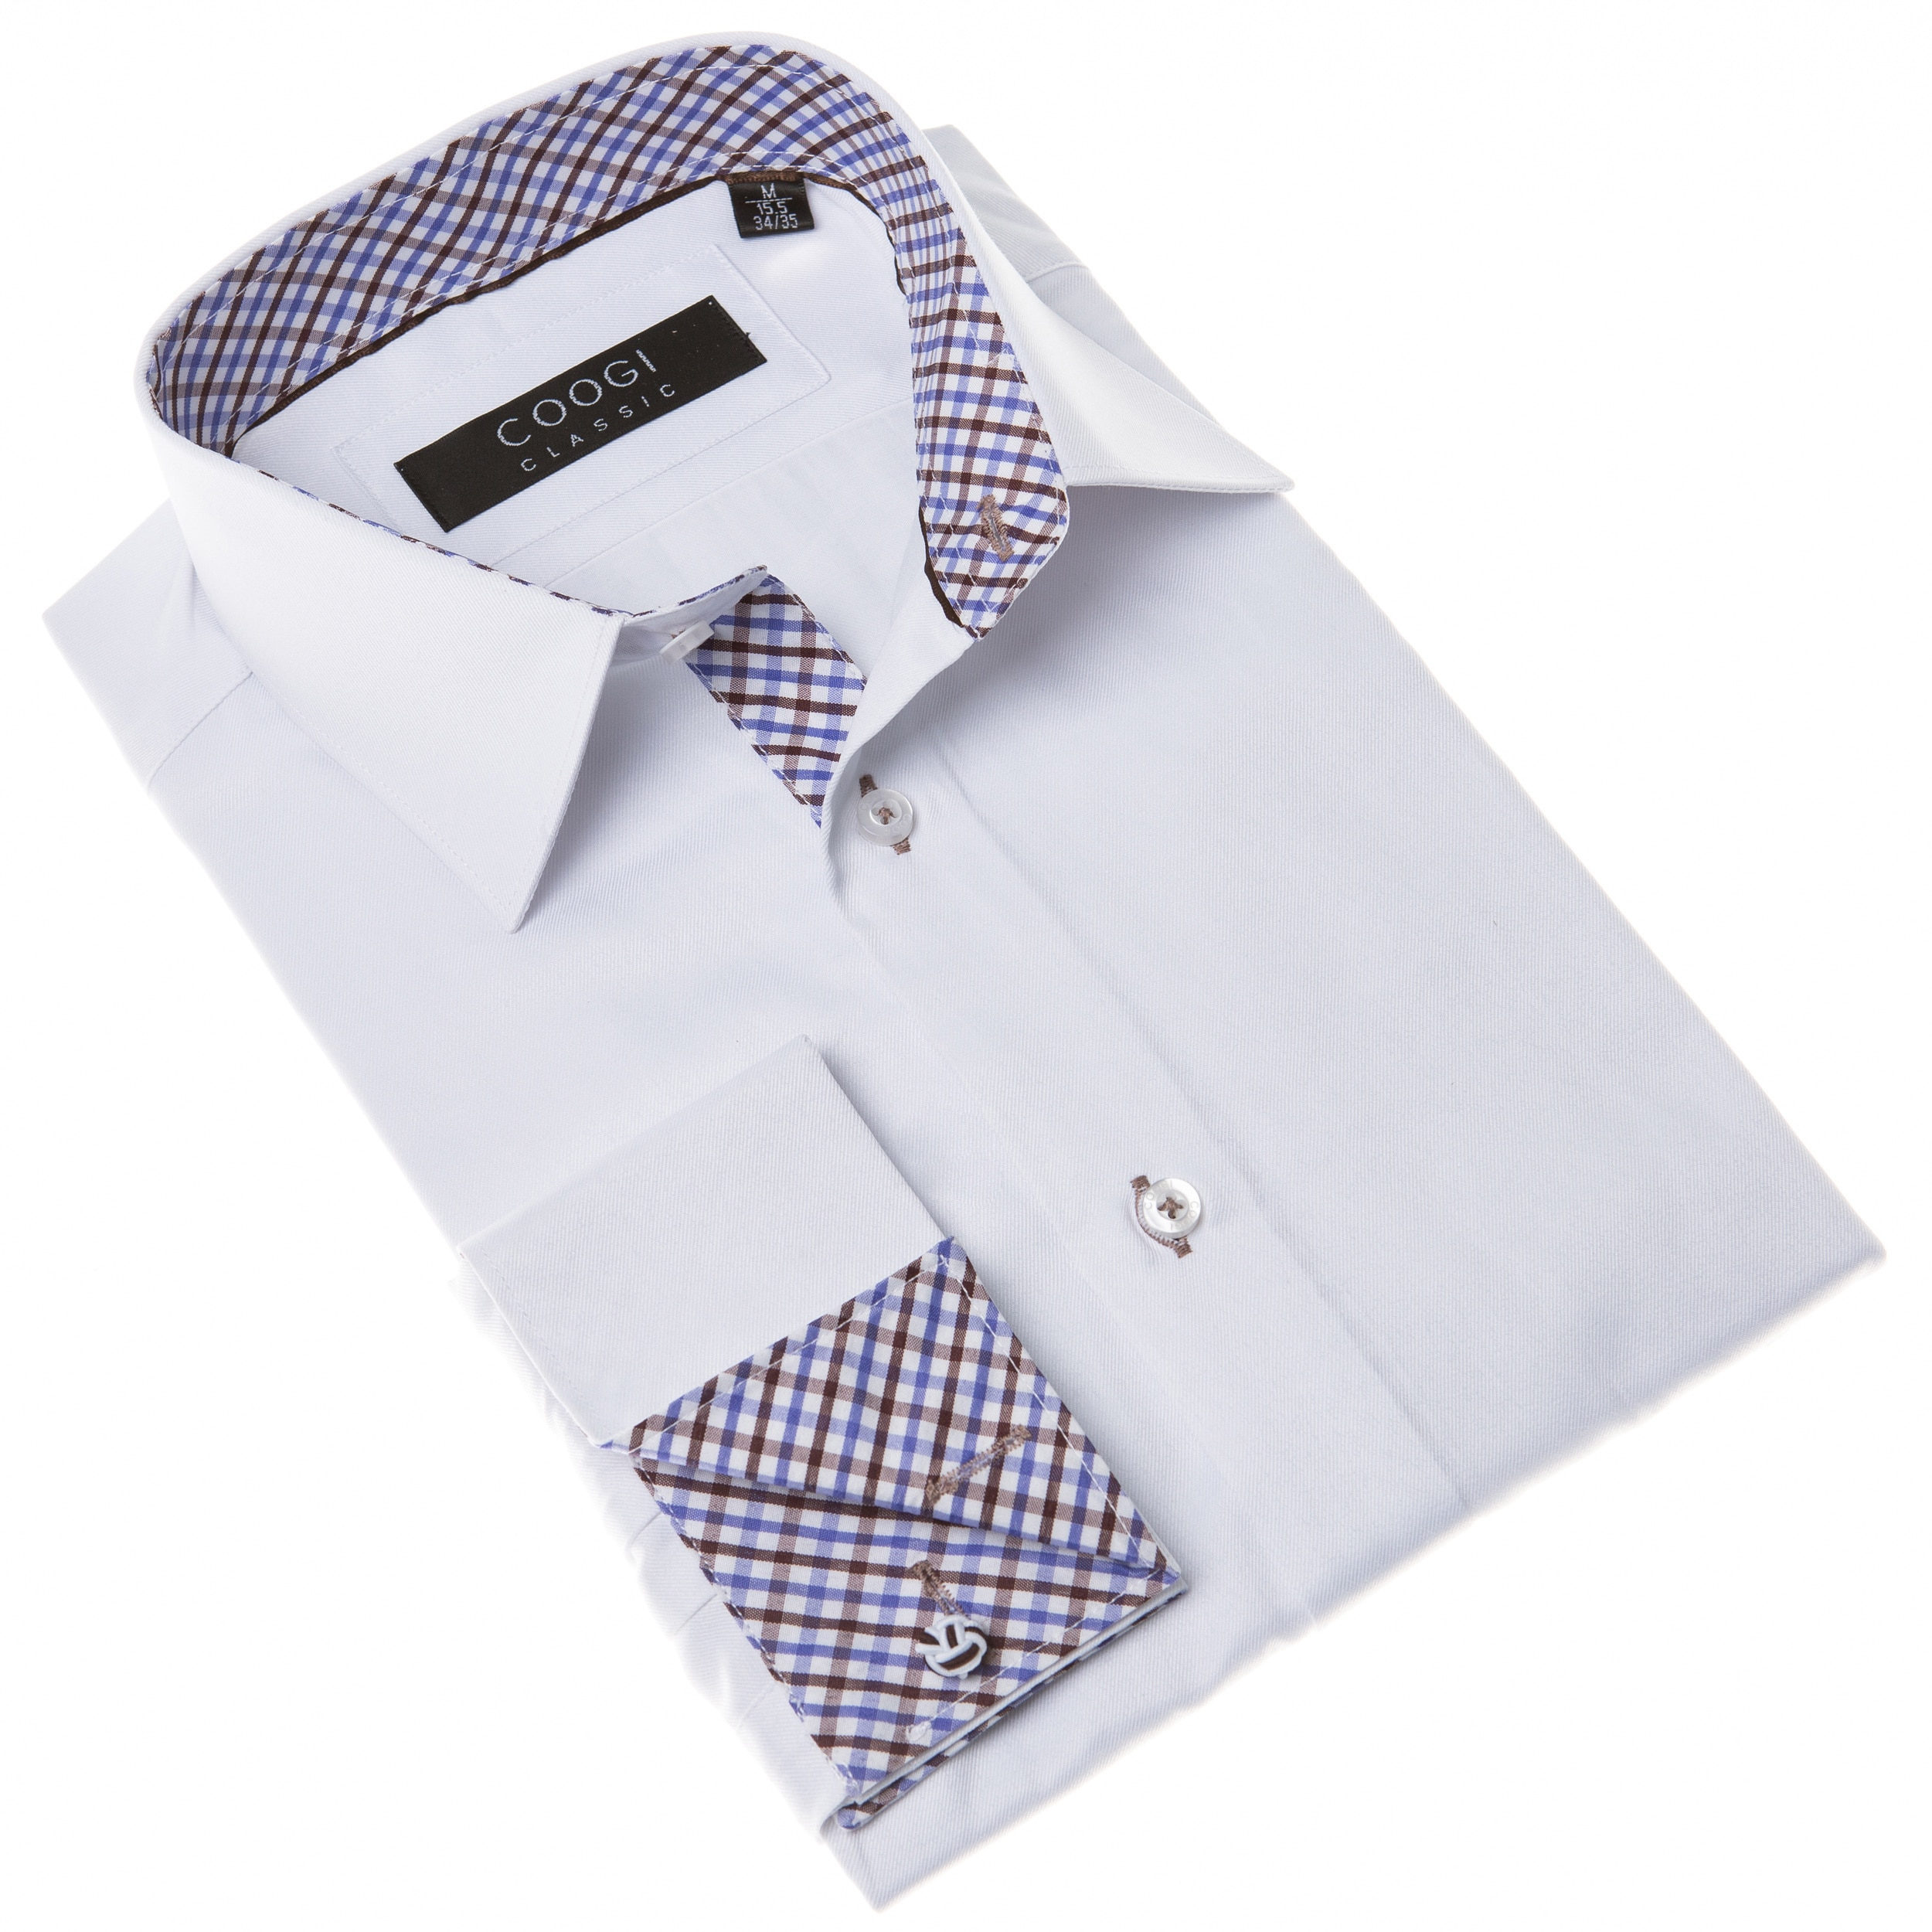 BRIO Coogi Men's White Classic-fit Dress Shirt with Brown...